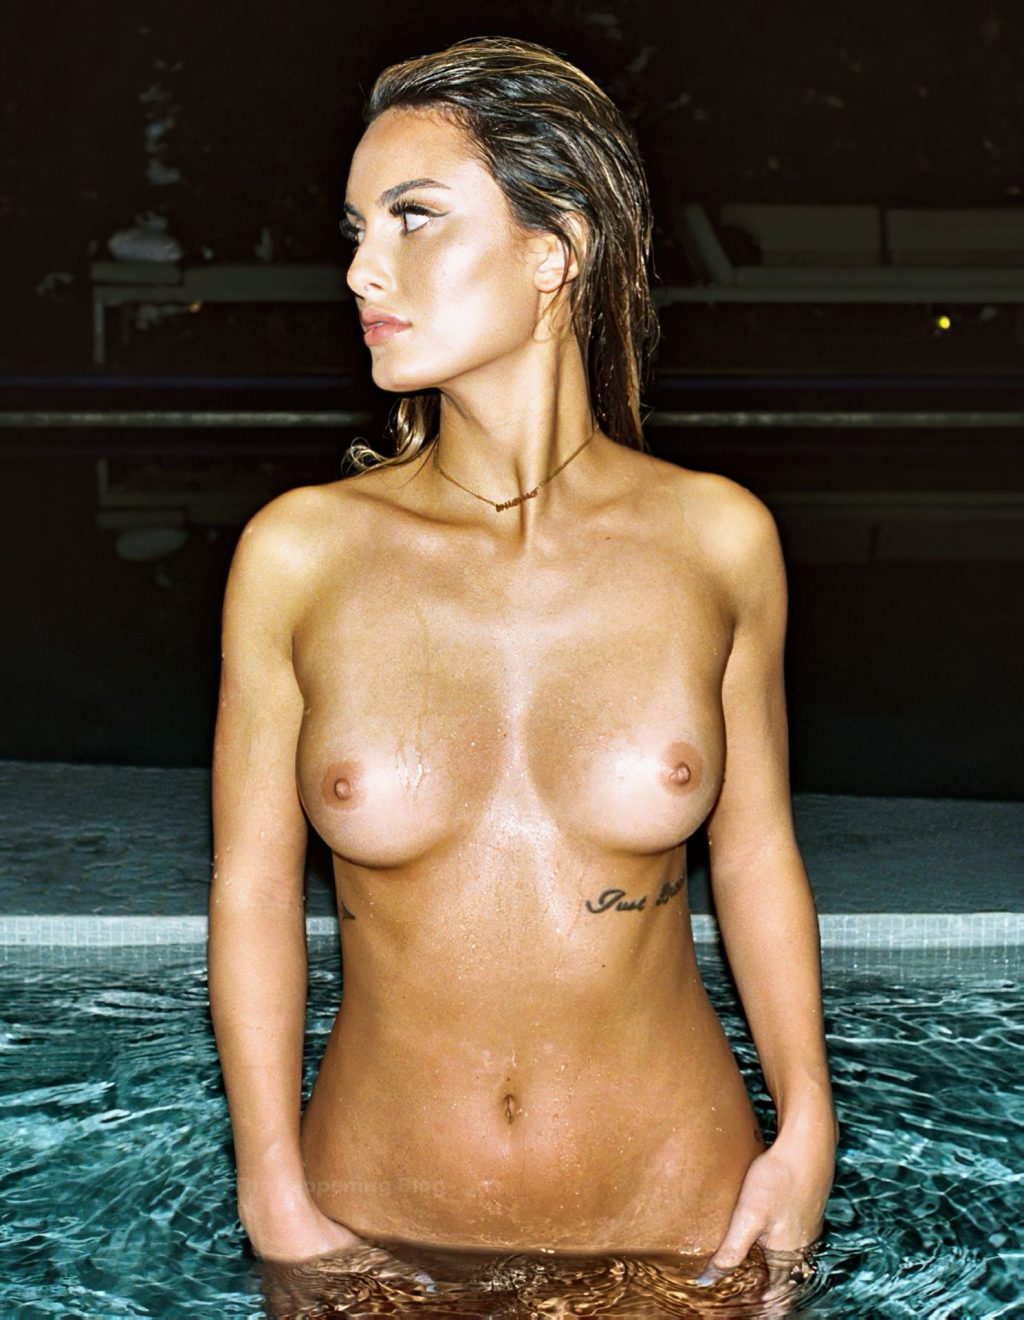 Julia Rose Poses Nude in the Pool (2 Photos)